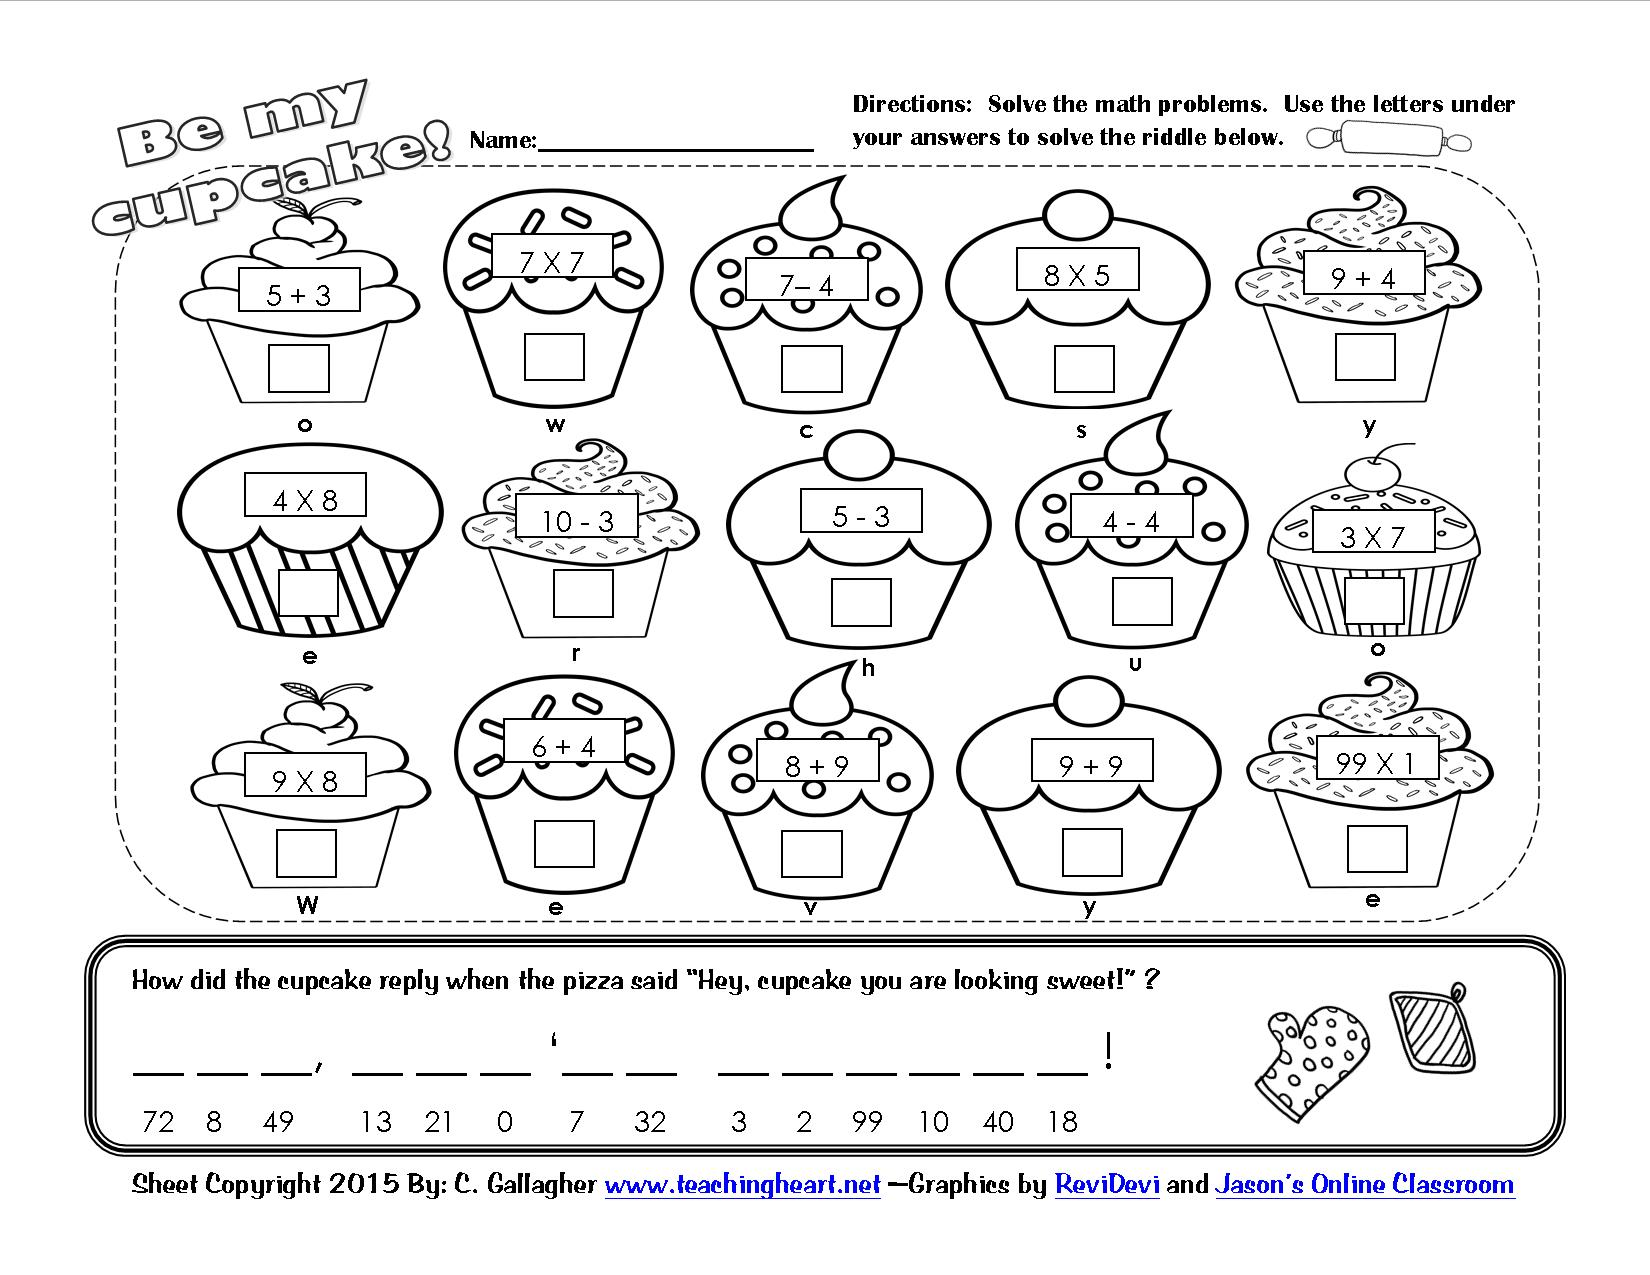 Cupcake for You & 100th Day Fun! - Teaching Heart Blog Teaching ...